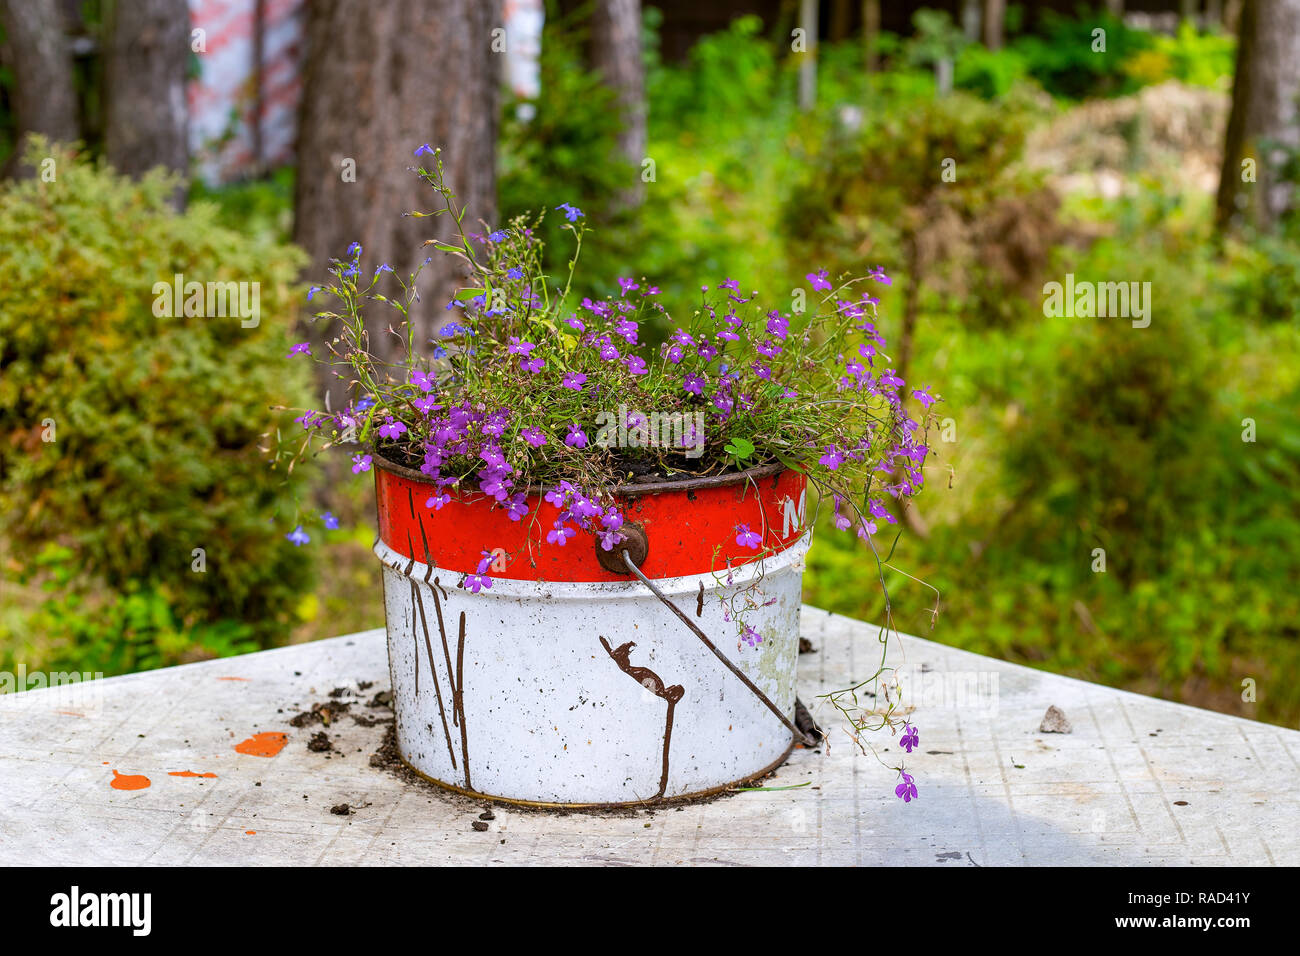 Paint Bucket On Garden Table High Resolution Stock Photography And Images Alamy